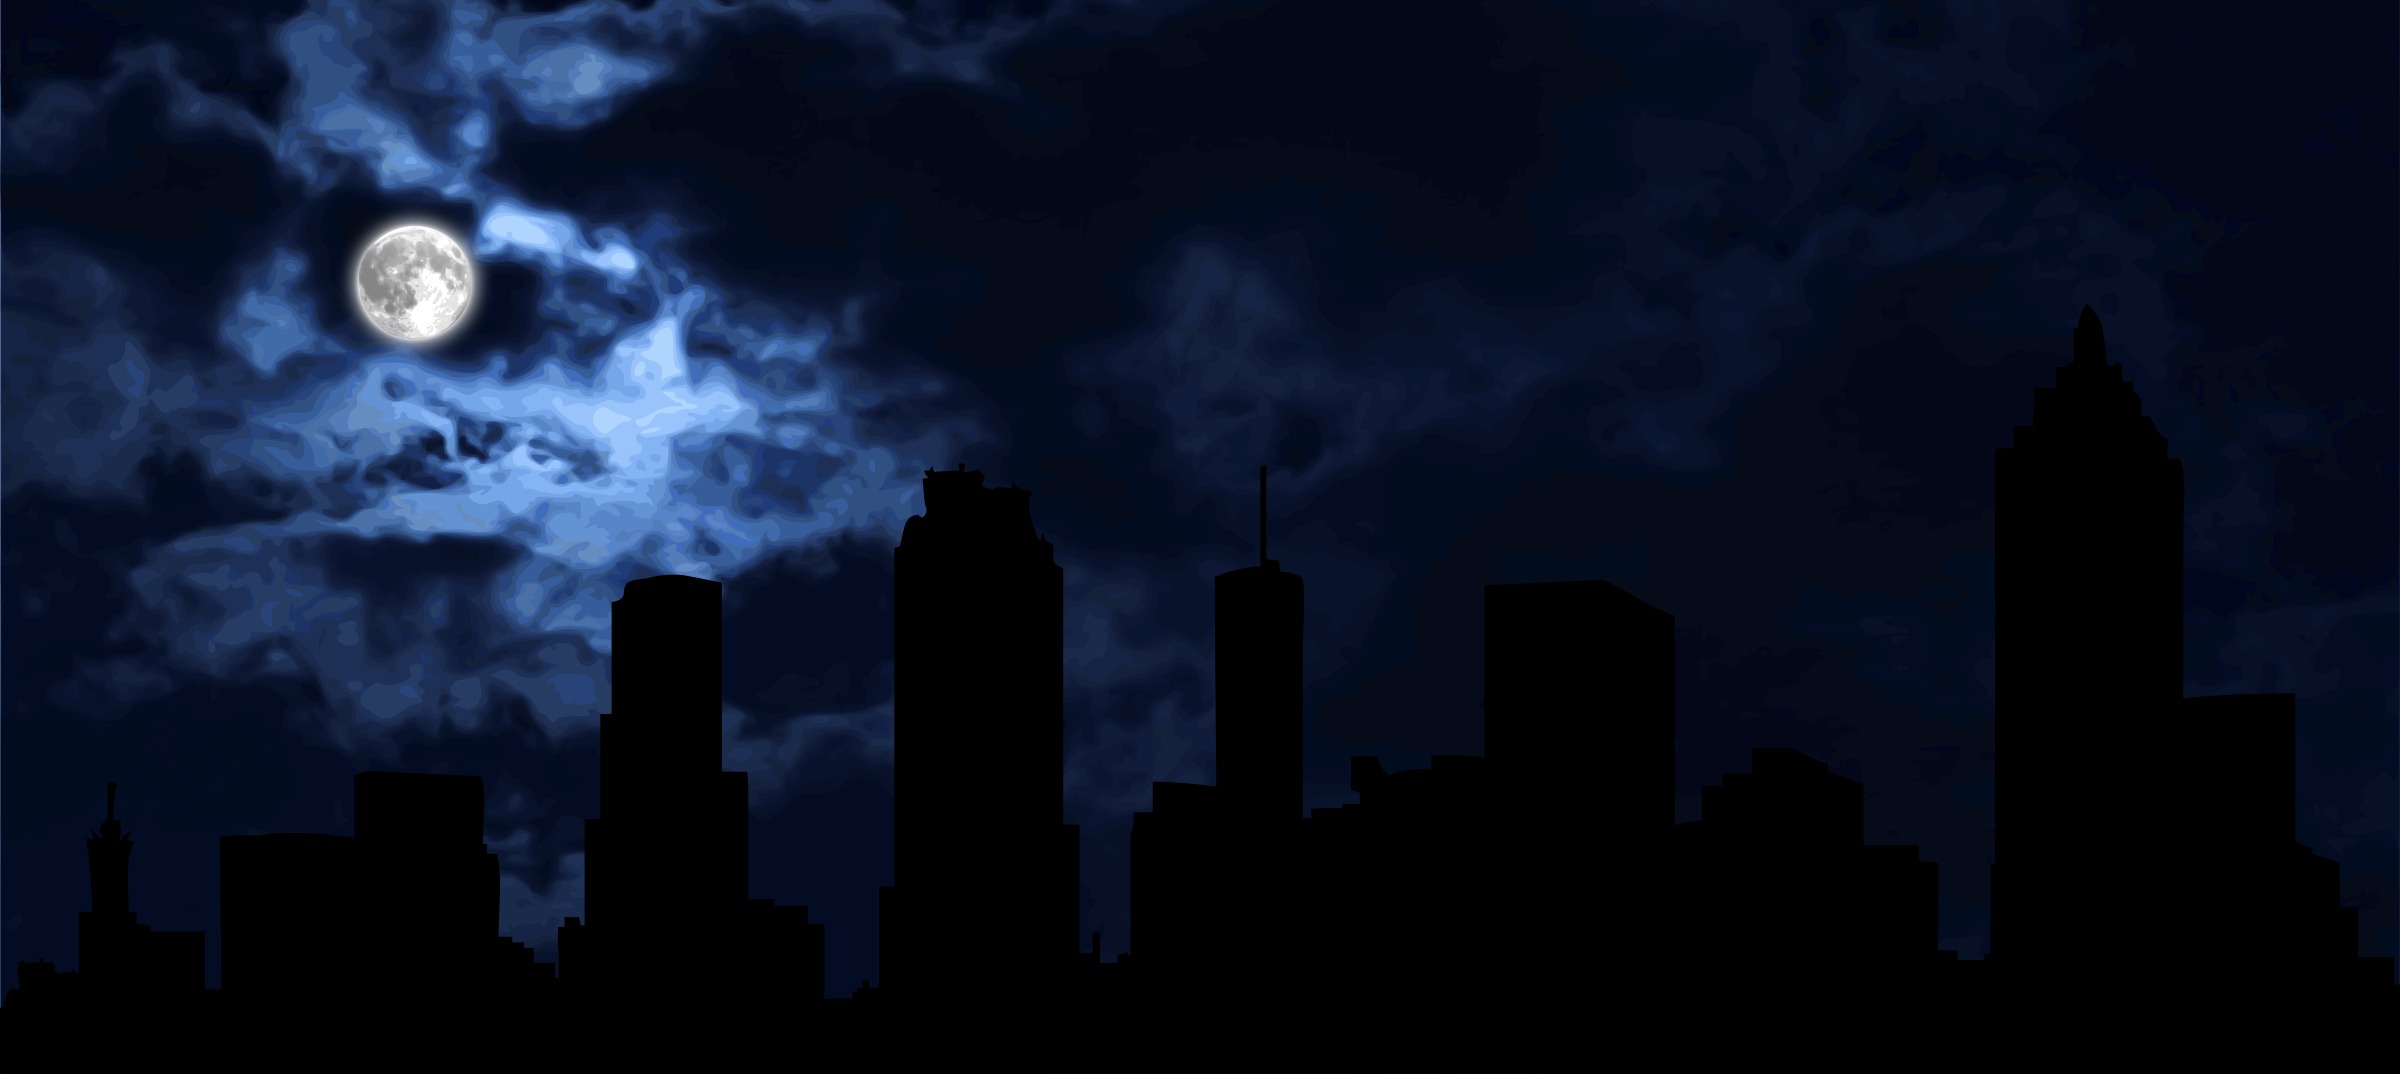 Skyline at night by Firkin